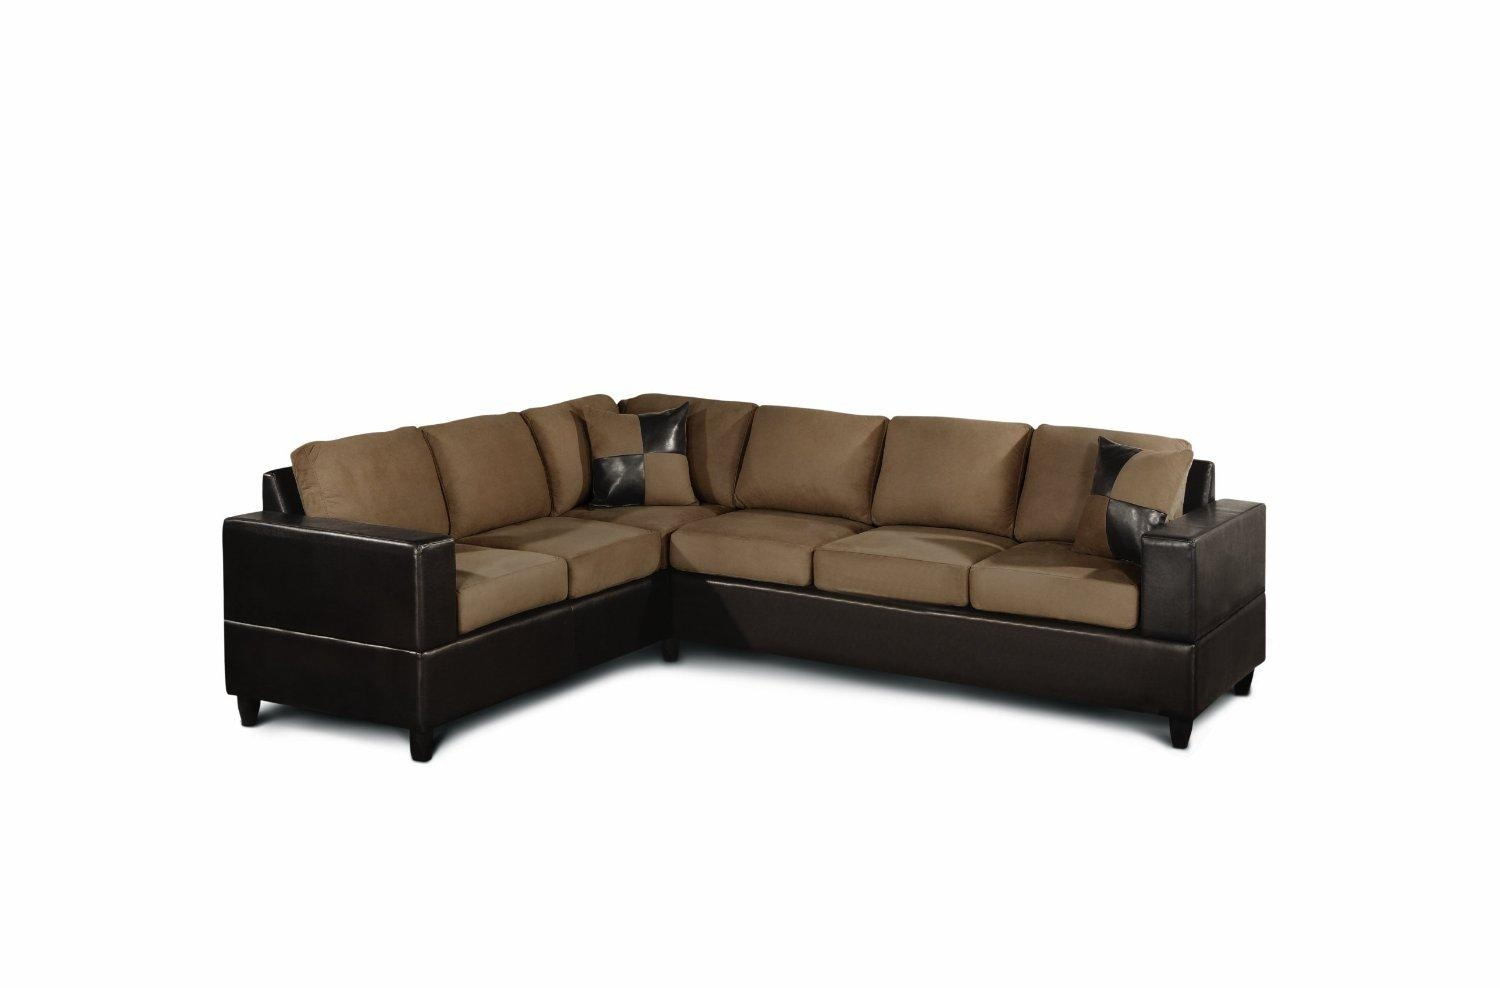 L Shaped Sofa For Small Spaces Intended For Small L Shaped Sofas (Image 9 of 20)